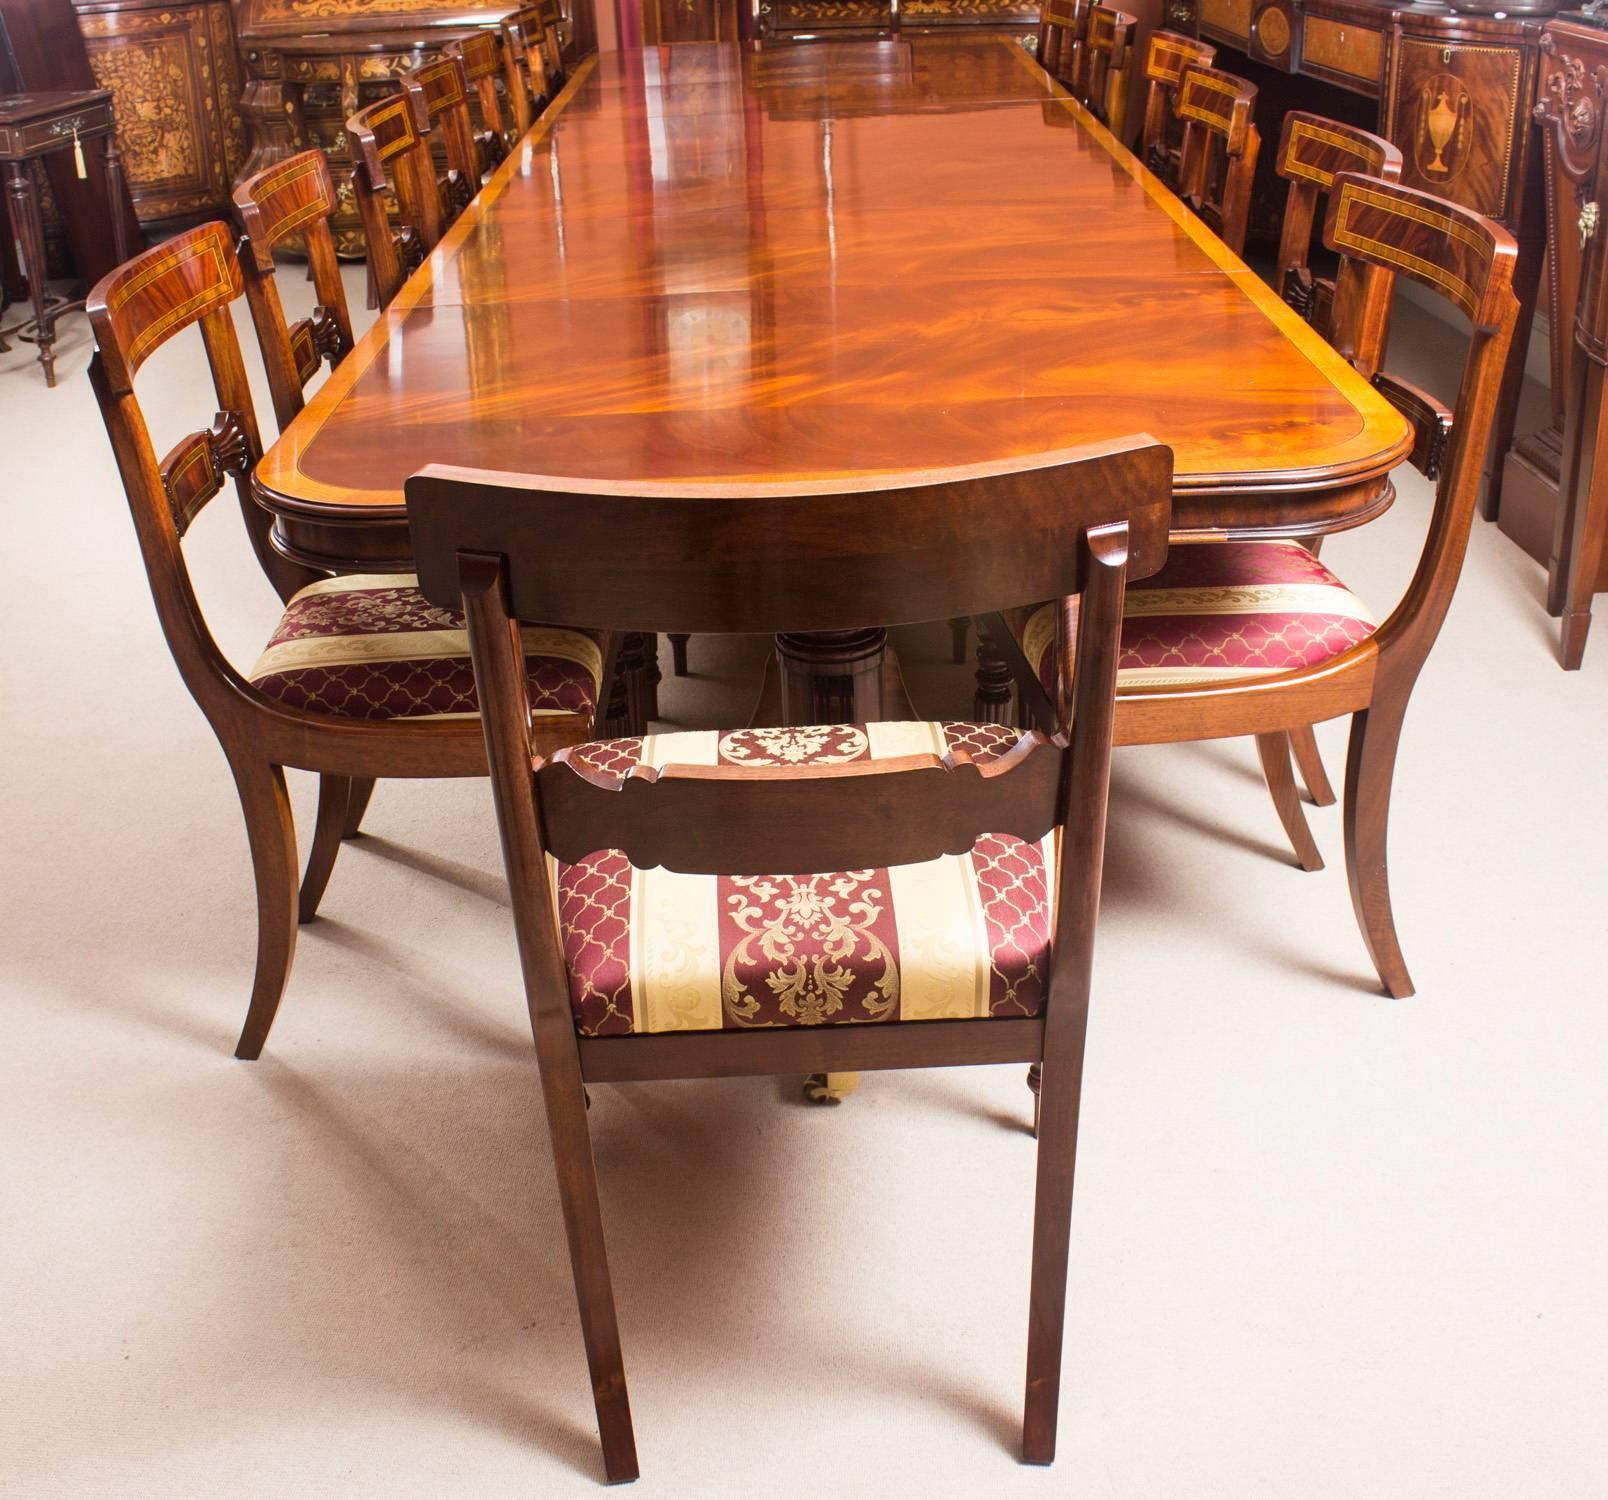 Bon This Is A Superb Bespoke Handmade Large Dining Set In Elegant Regency  Style, Crafted In